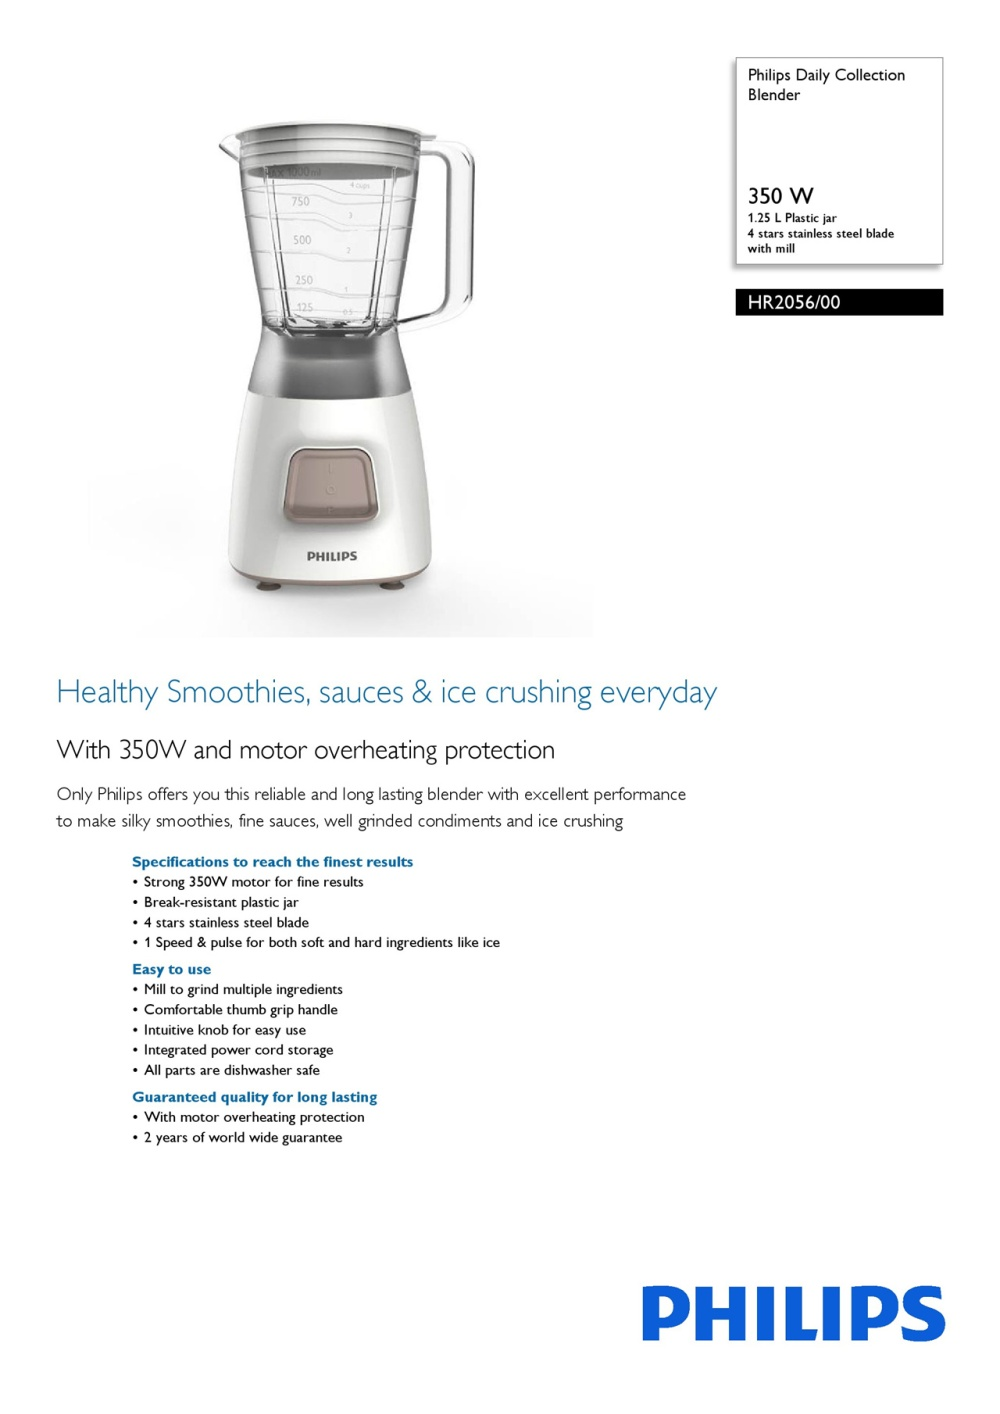 Philips Daily Collection Blender Hr2056 350 W 125 L Plastic Jar 4 Juicer Extractor Hr1811 Specifications Of Stars Stainless Steel Blade Intl